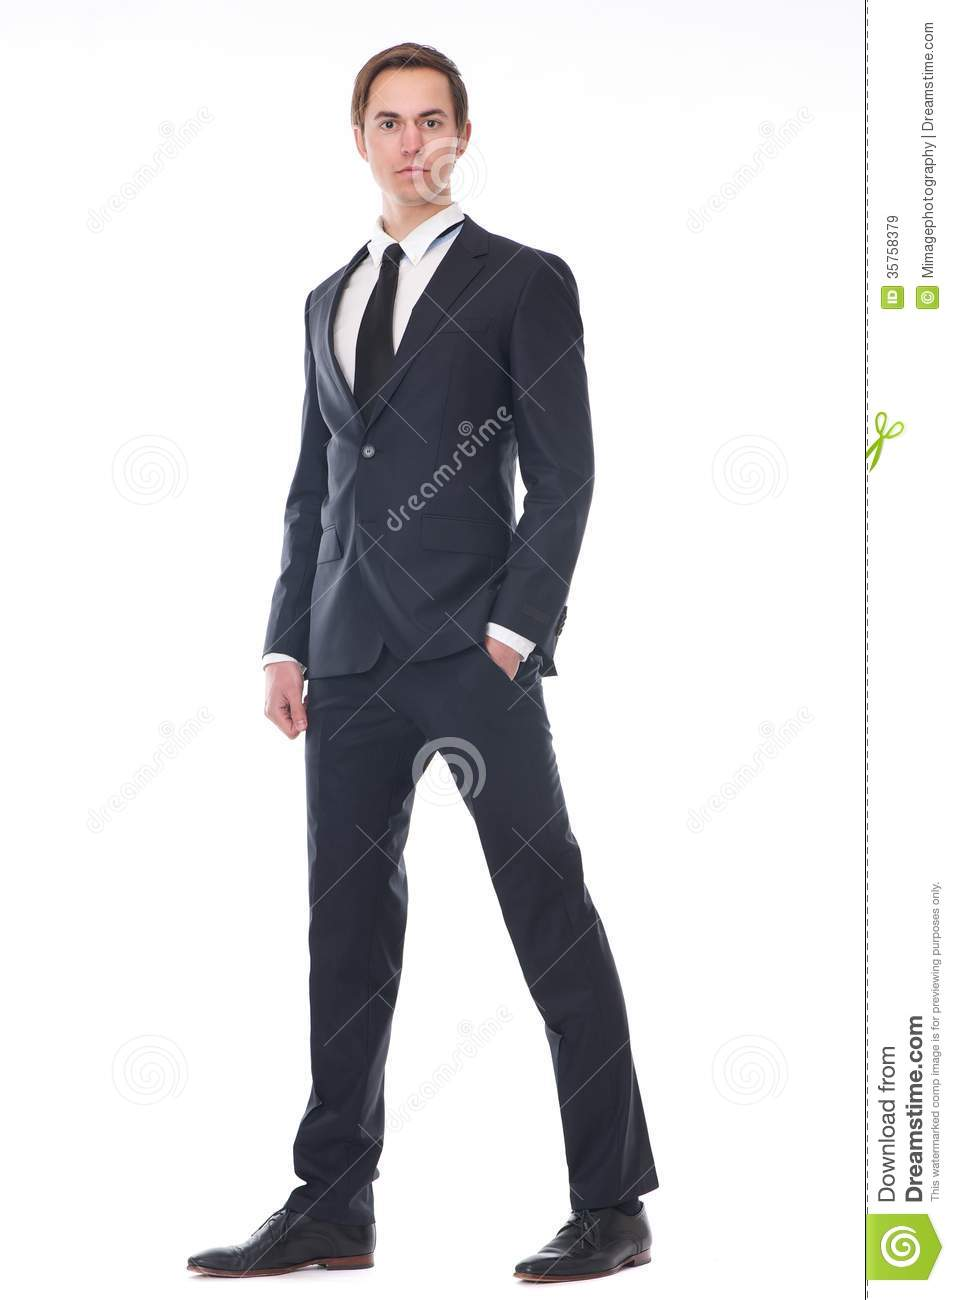 Full Body Portrait Of A Handsome Young Businessman In Black Suit